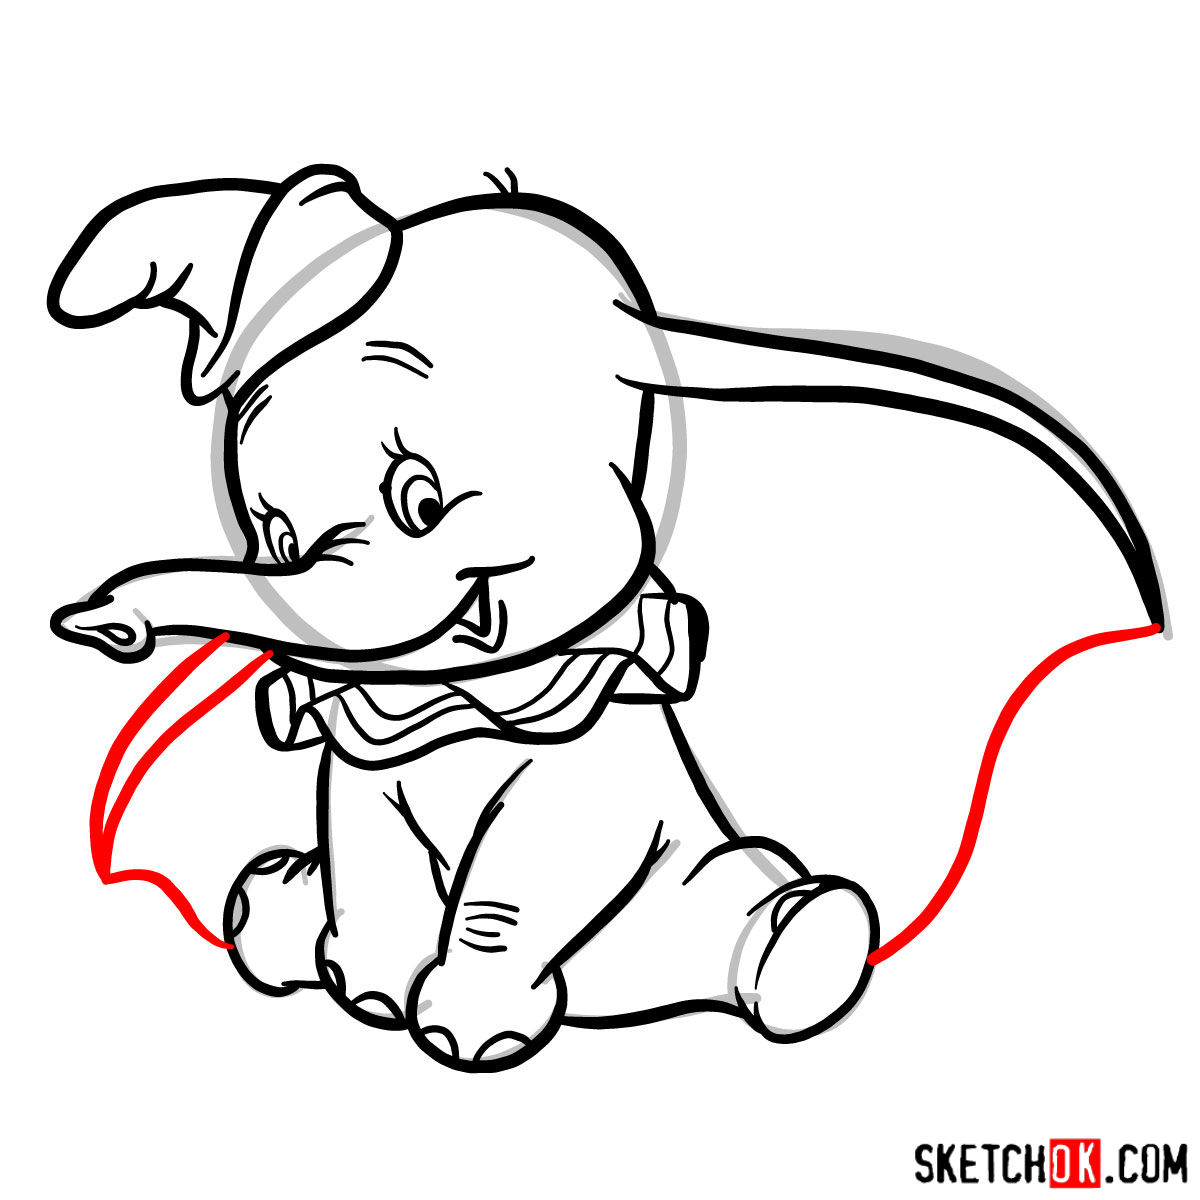 How to draw Dumbo the elephant - step 10